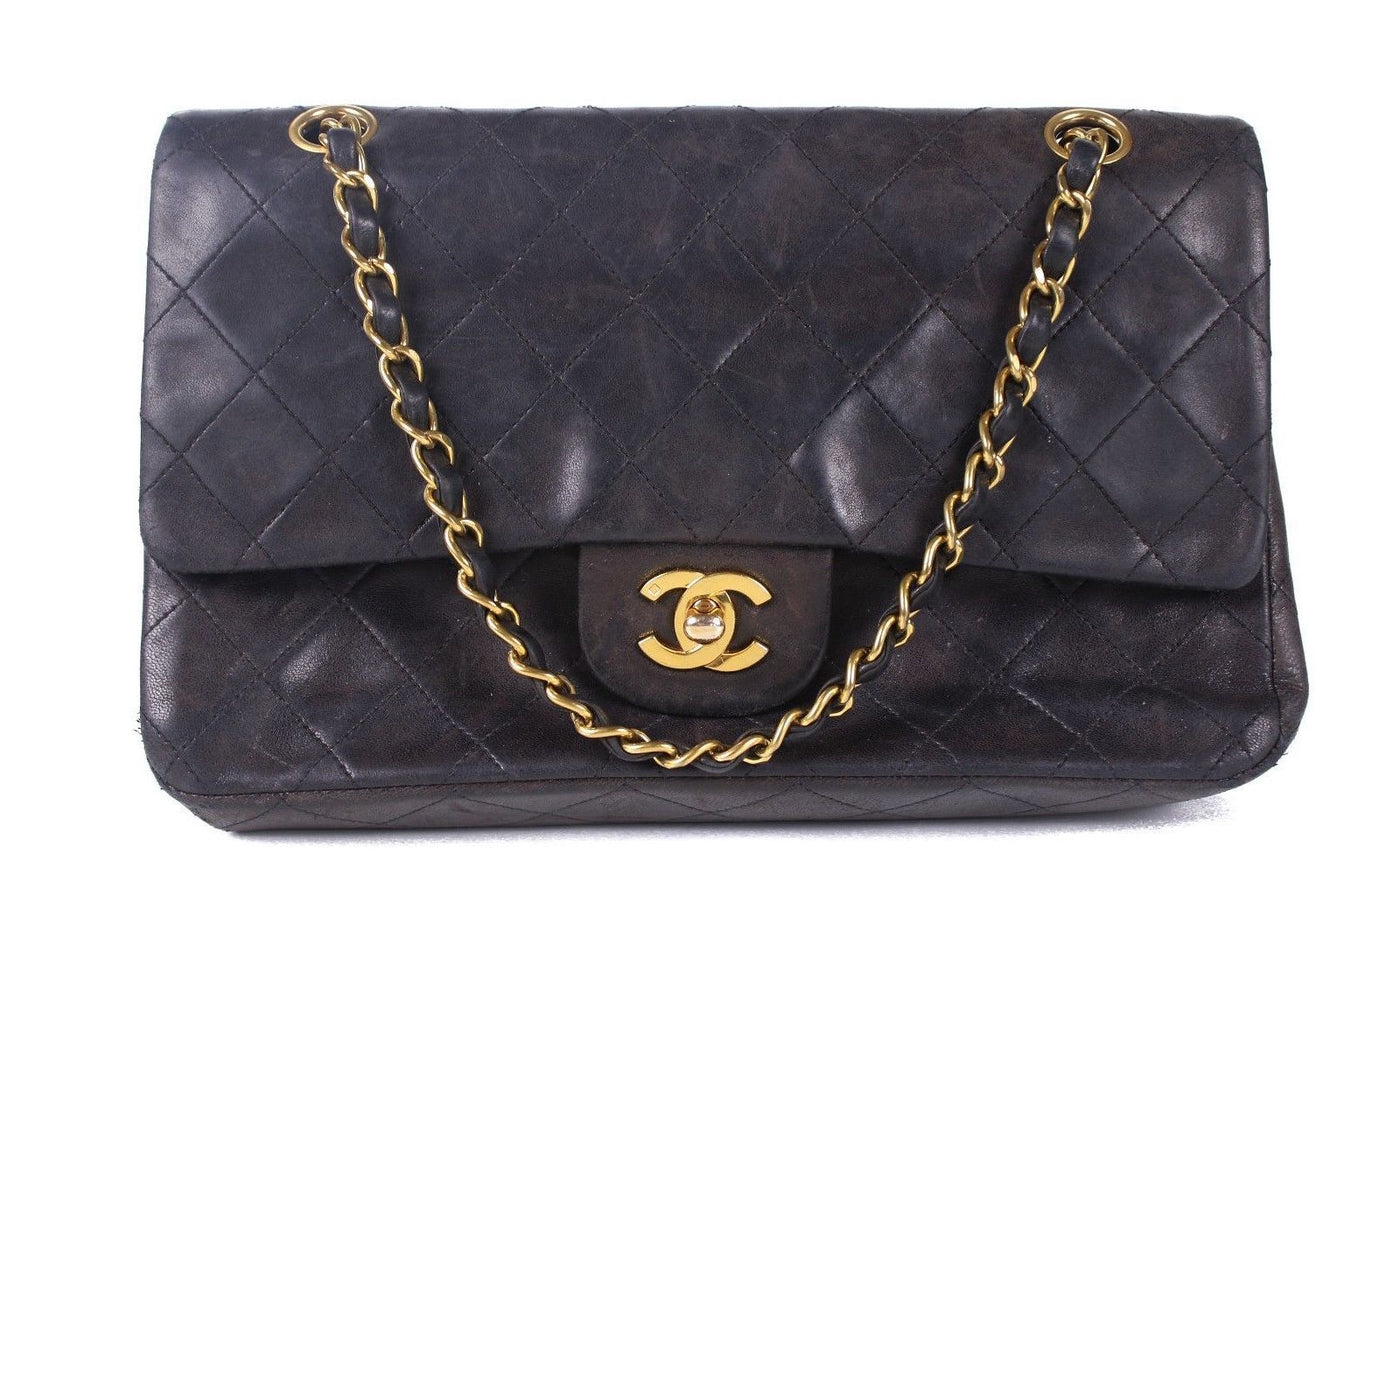 1a1e41c28eef What You Probably Don't Know About Coco Chanel's Classic Flap Bag ...